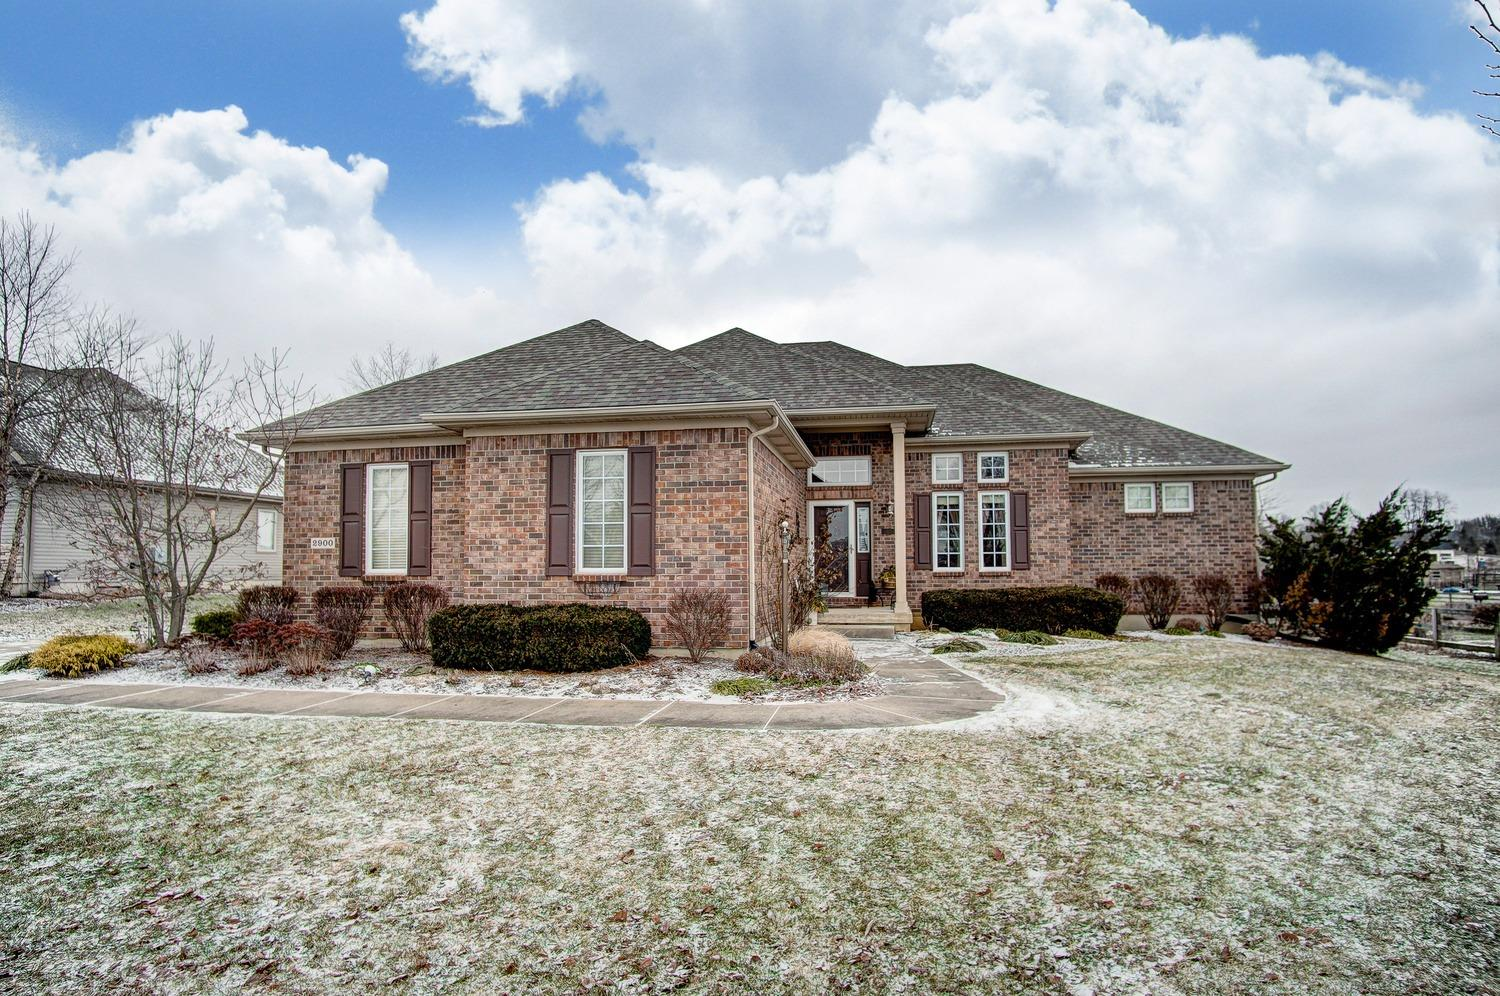 Property for sale at 2900 Station House Way, Clearcreek Twp.,  OH 45068